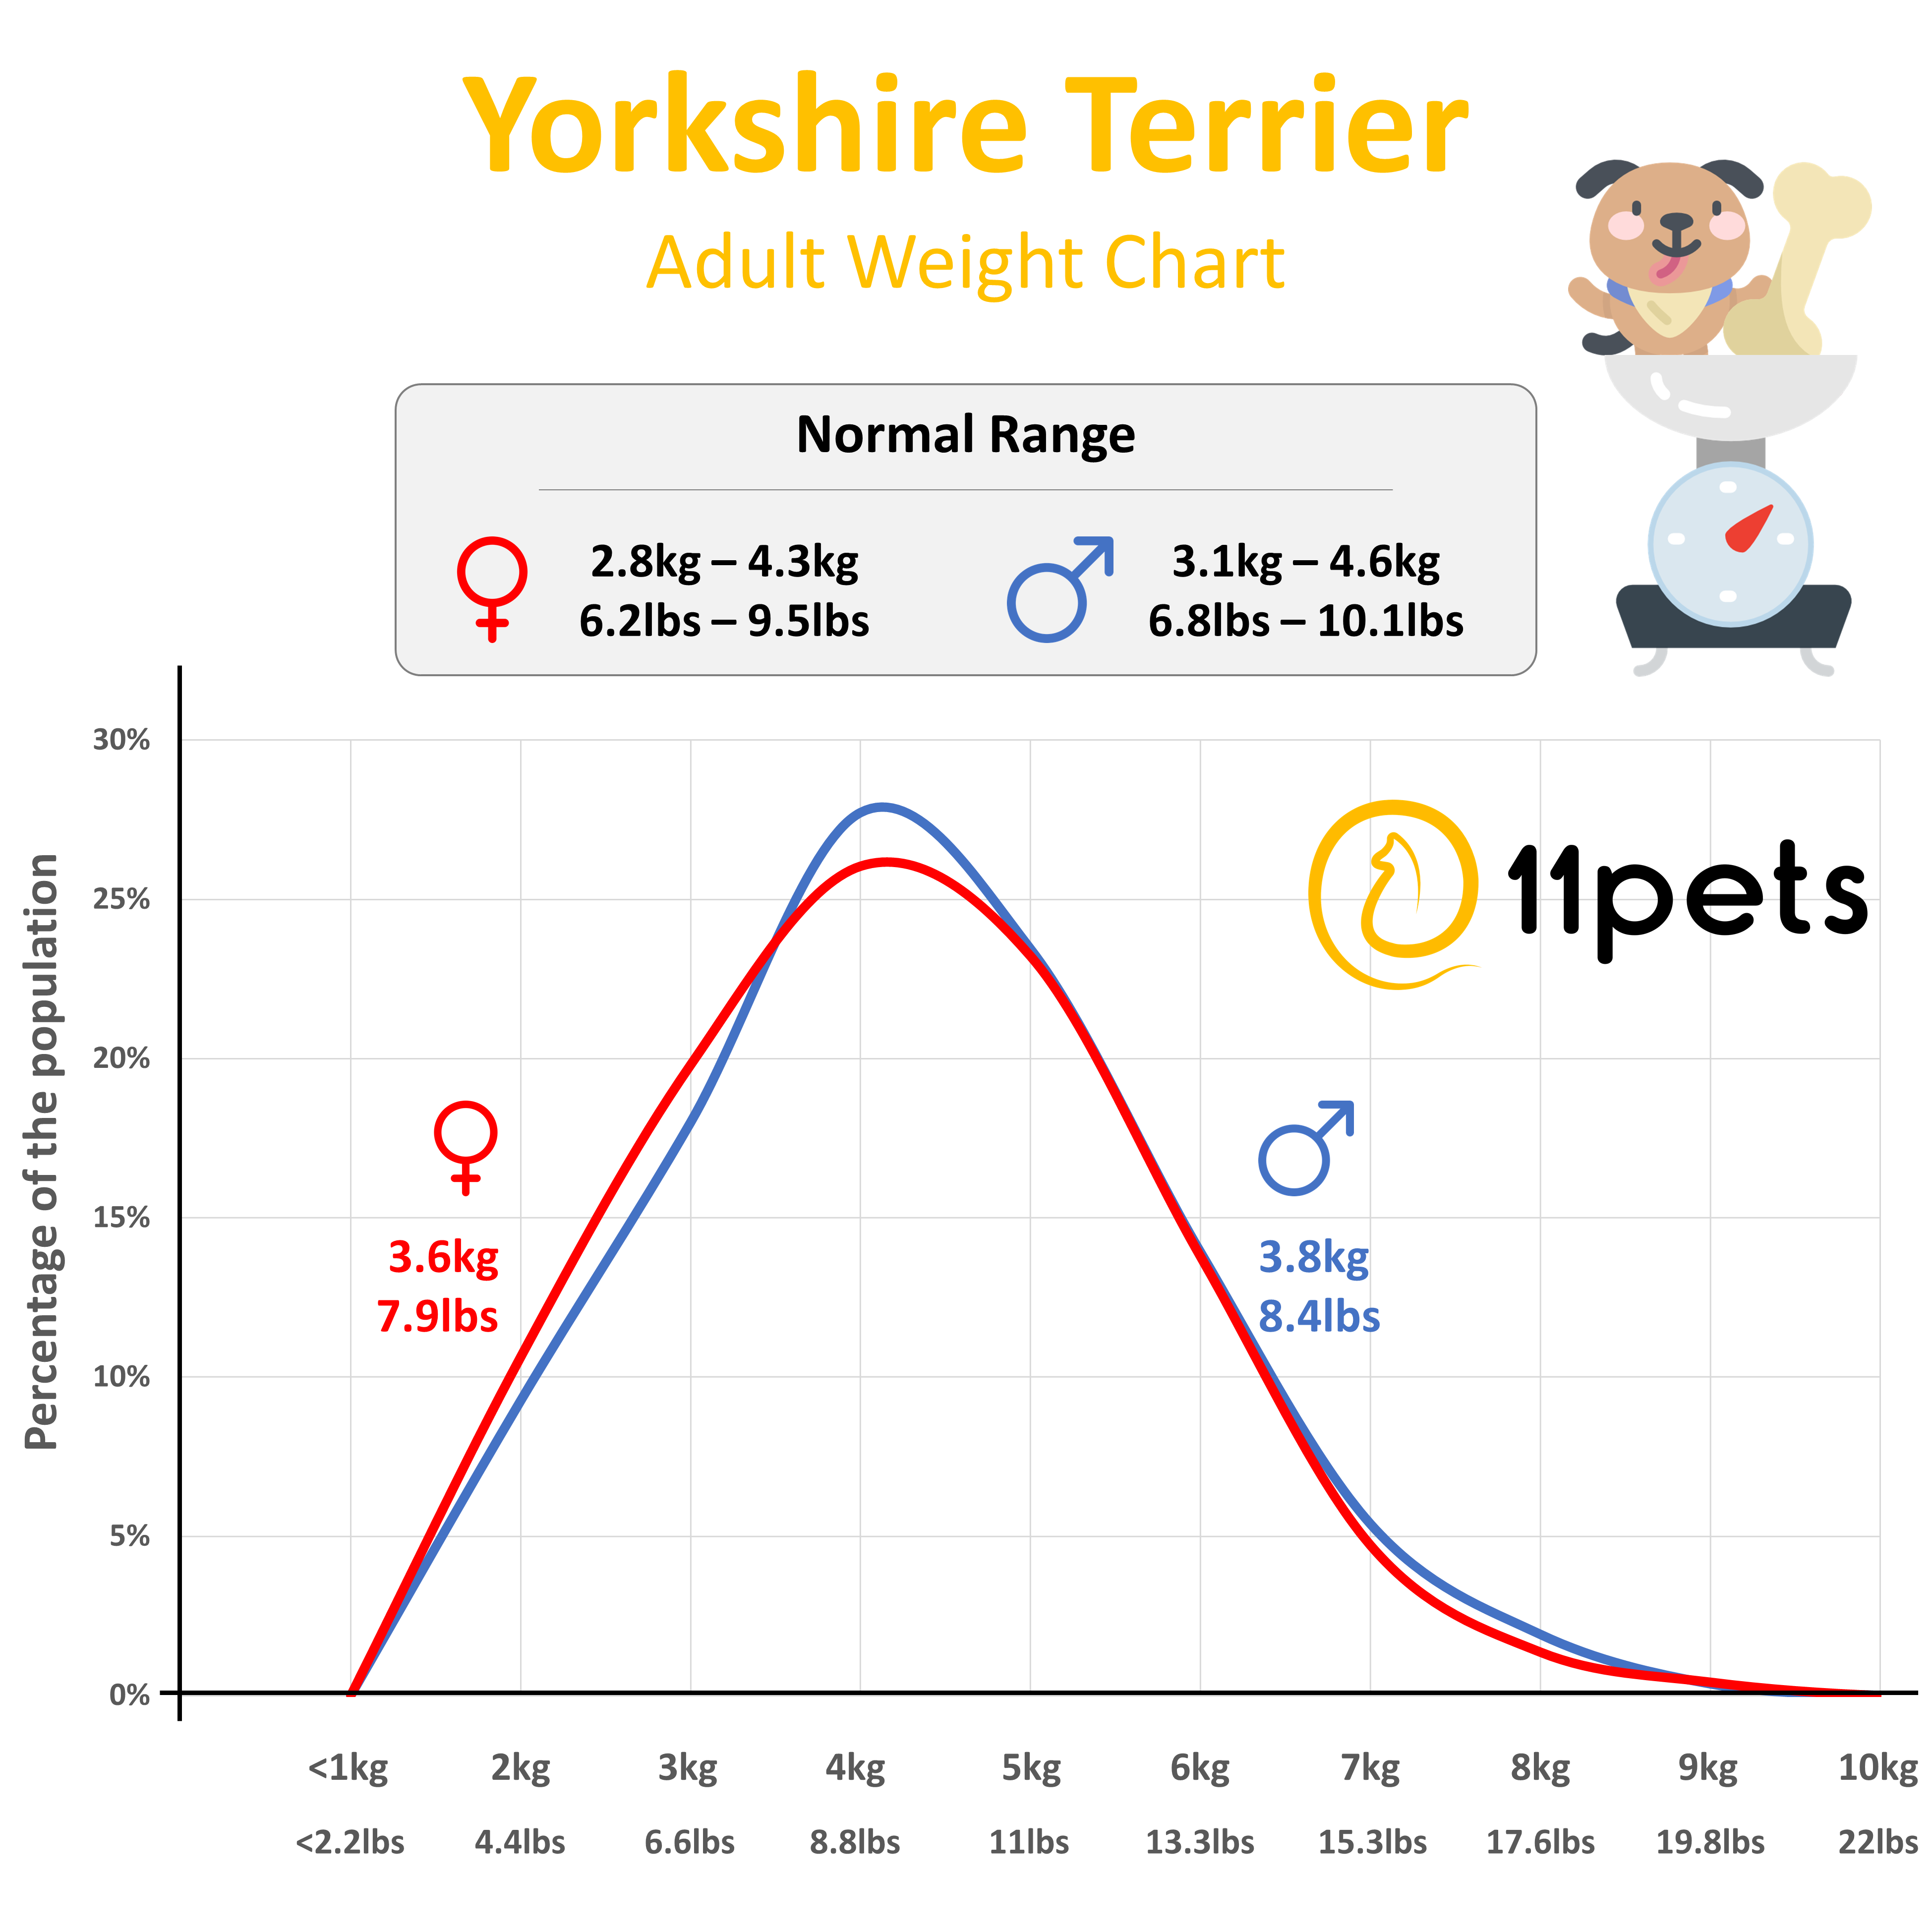 Typical Weight For Yorkshire Terrier Dogs